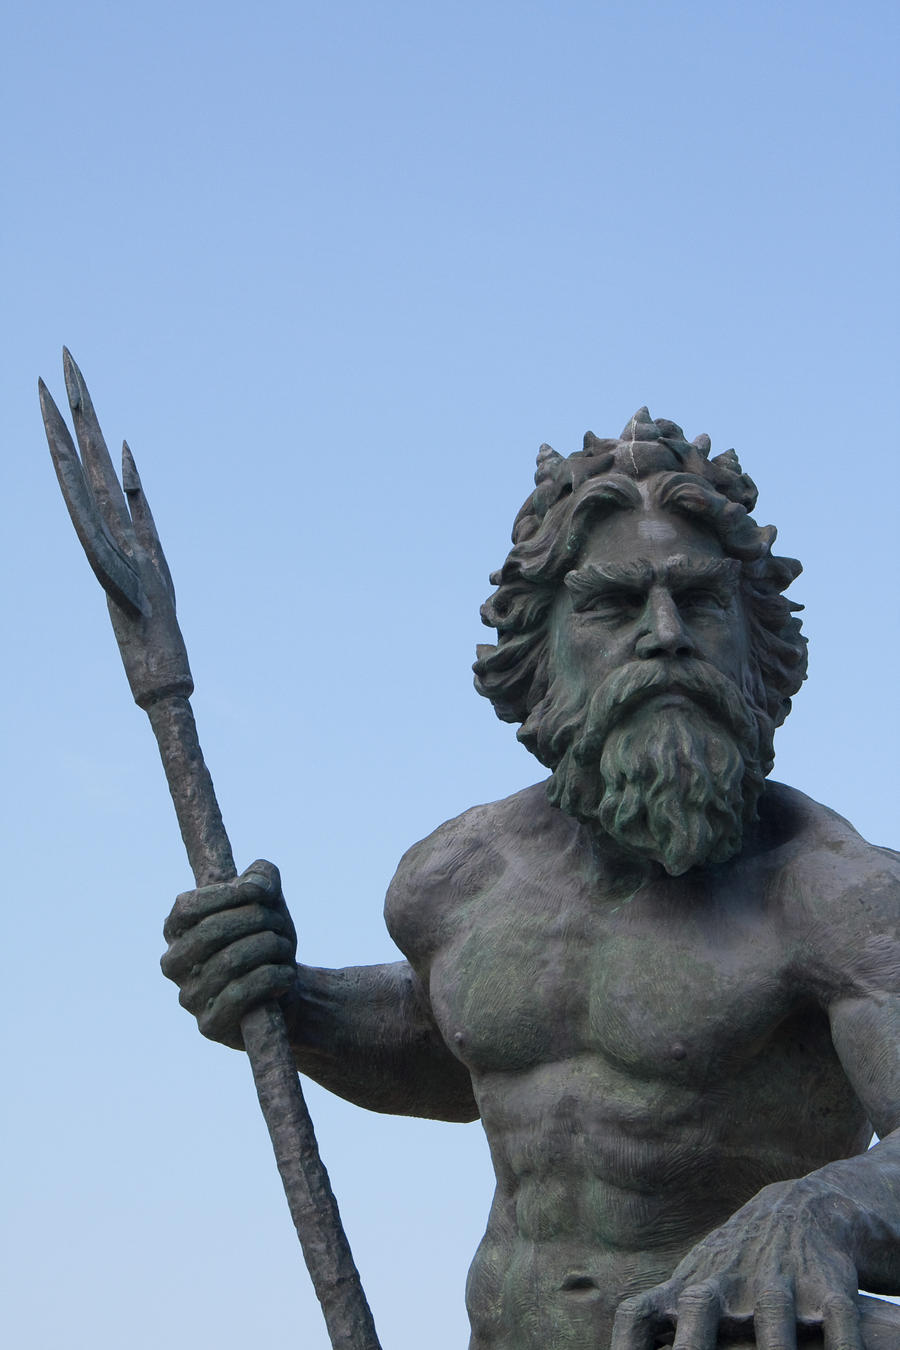 King Neptune Statue 2 by MartyCASH on deviantART